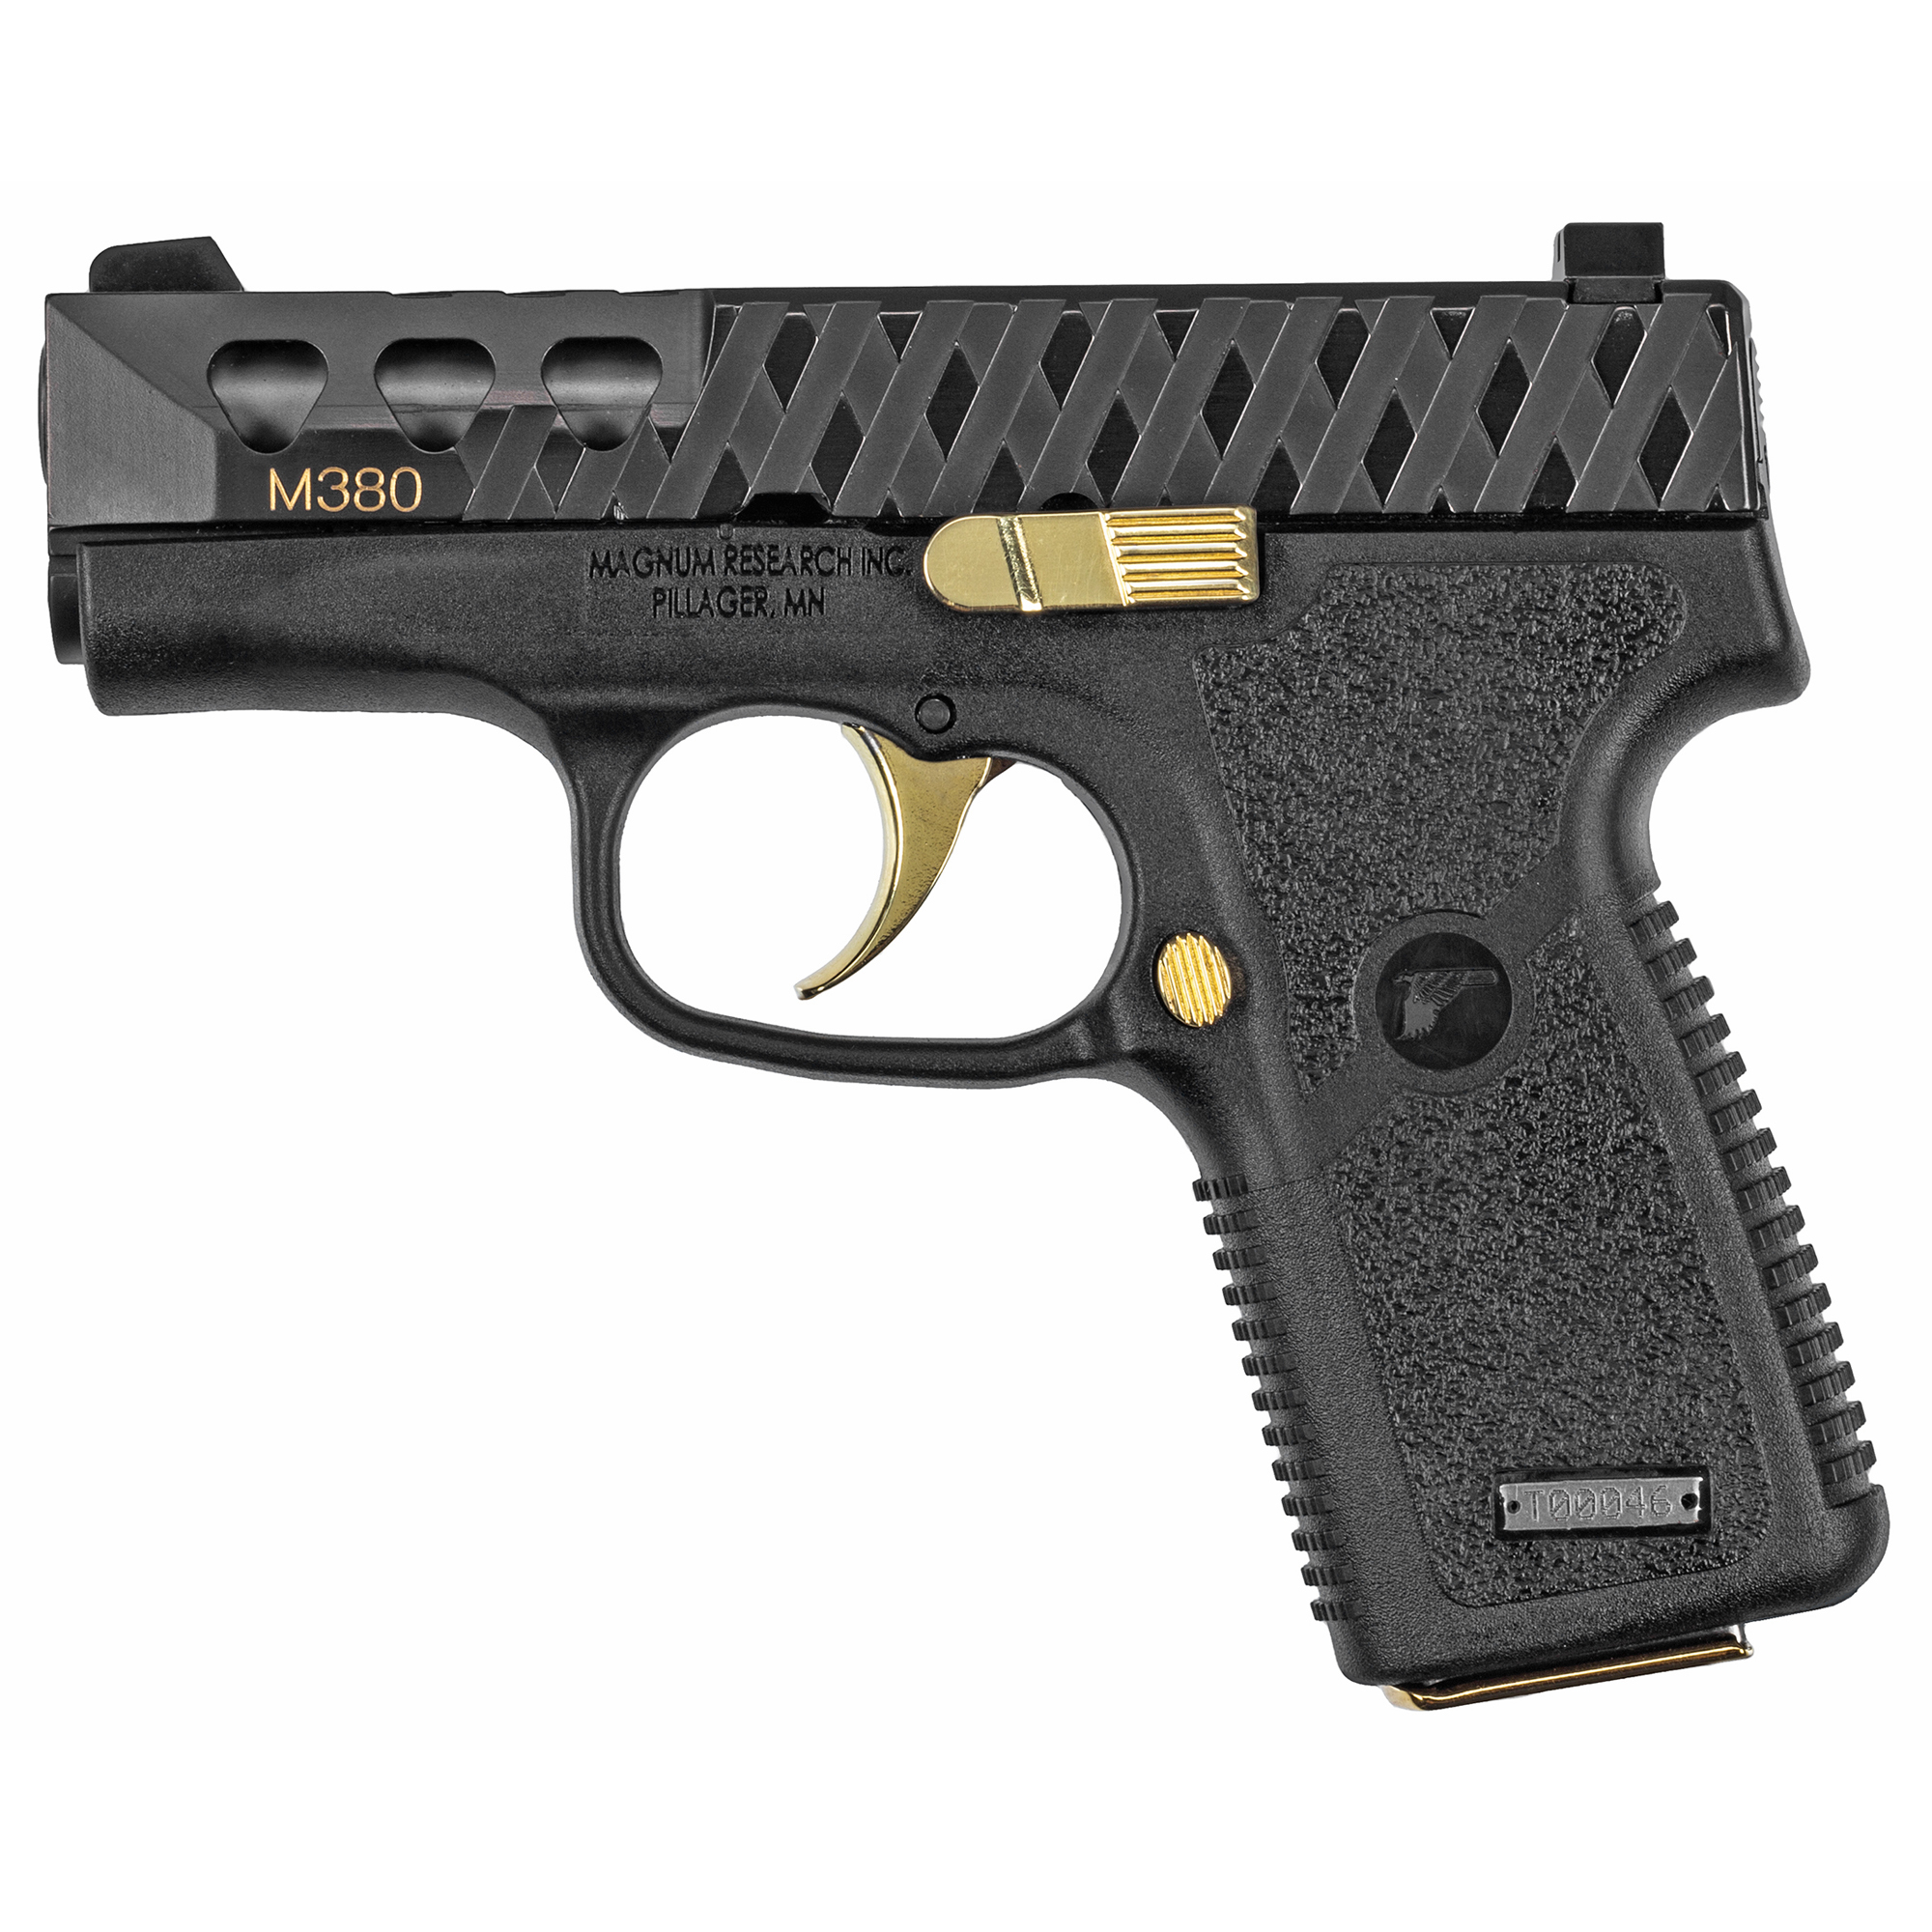 Magnum Research's .380acp pocket pistol offering features some high and accents and custom engraving making this a pistol that is sure to turn heads.